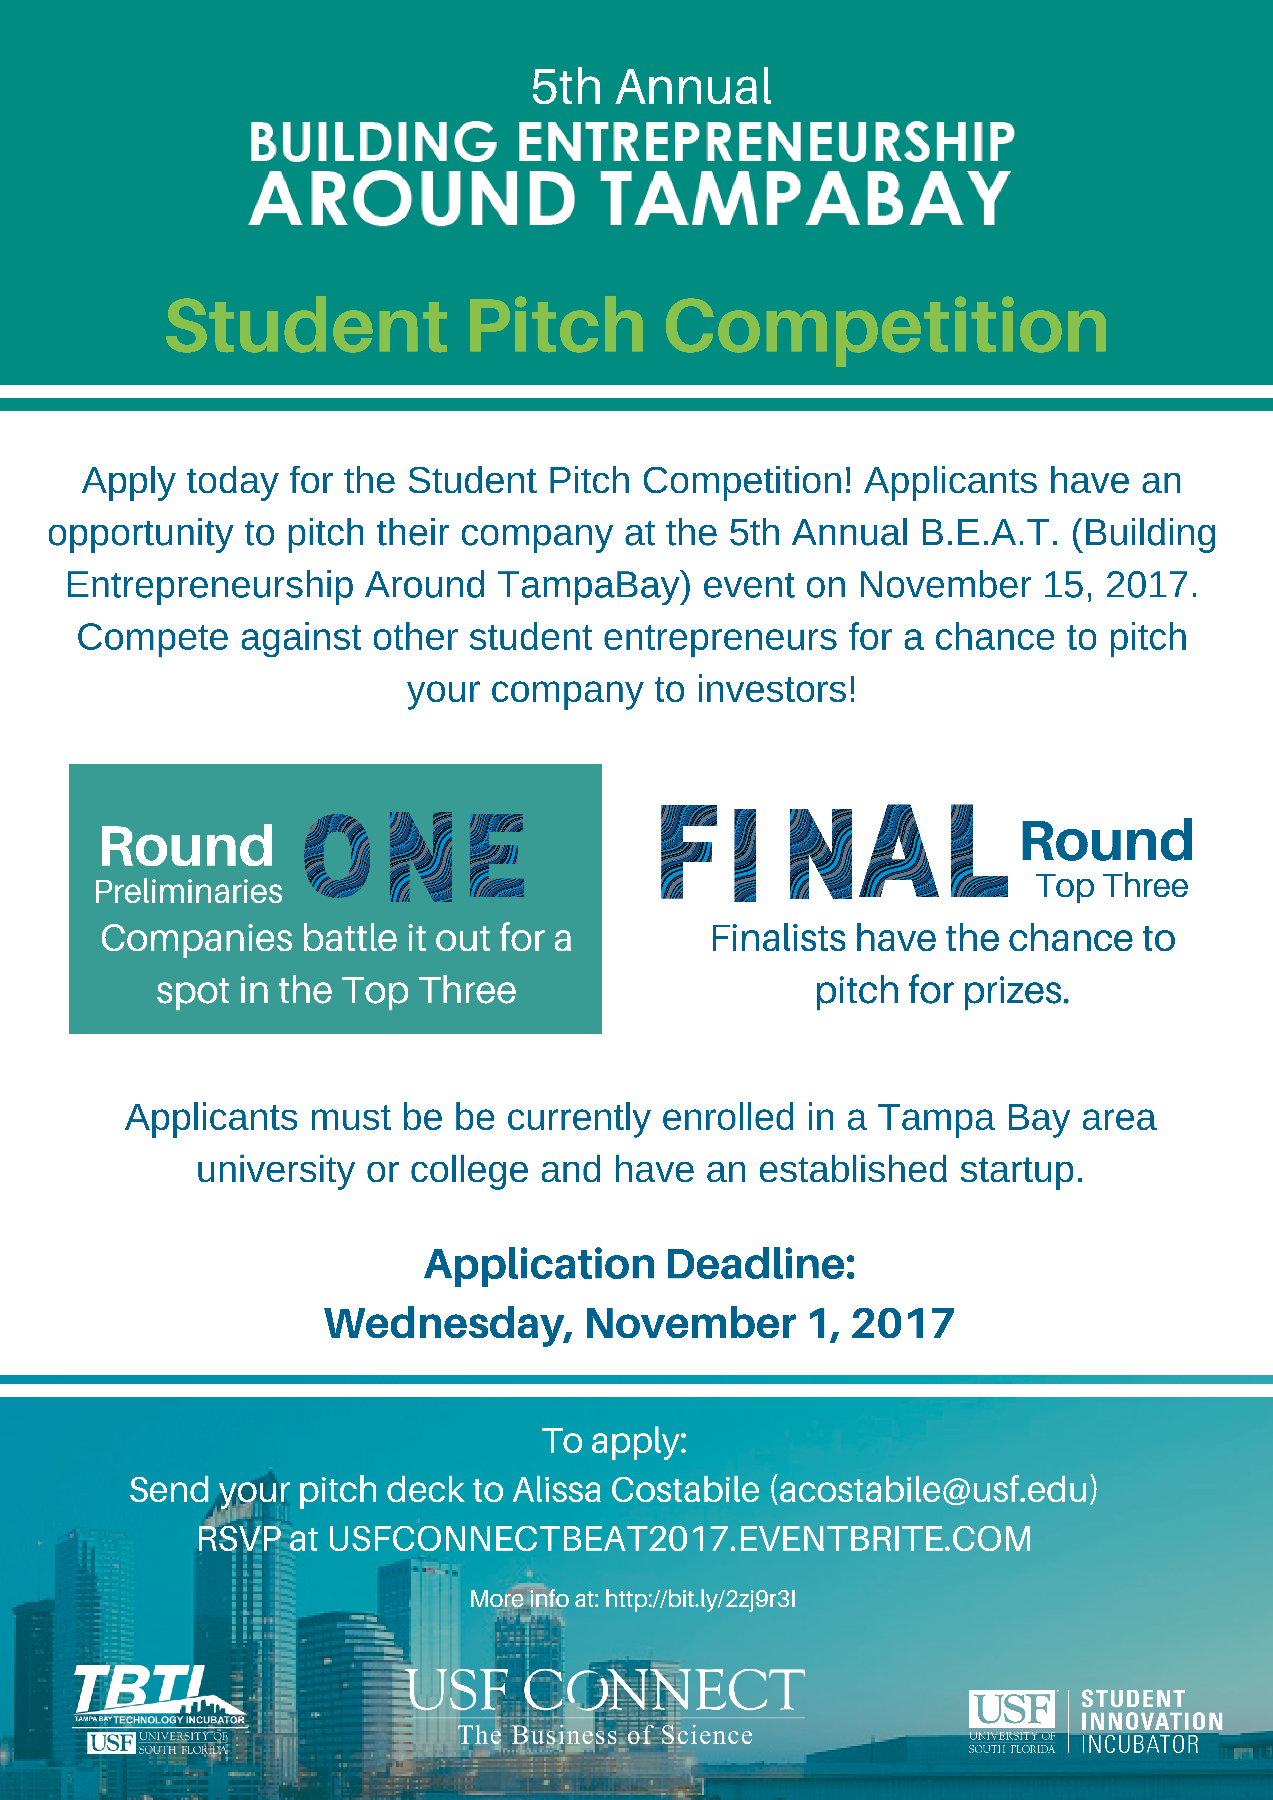 5th Annual B.E.A.T. Student Pitch Competition Flyer